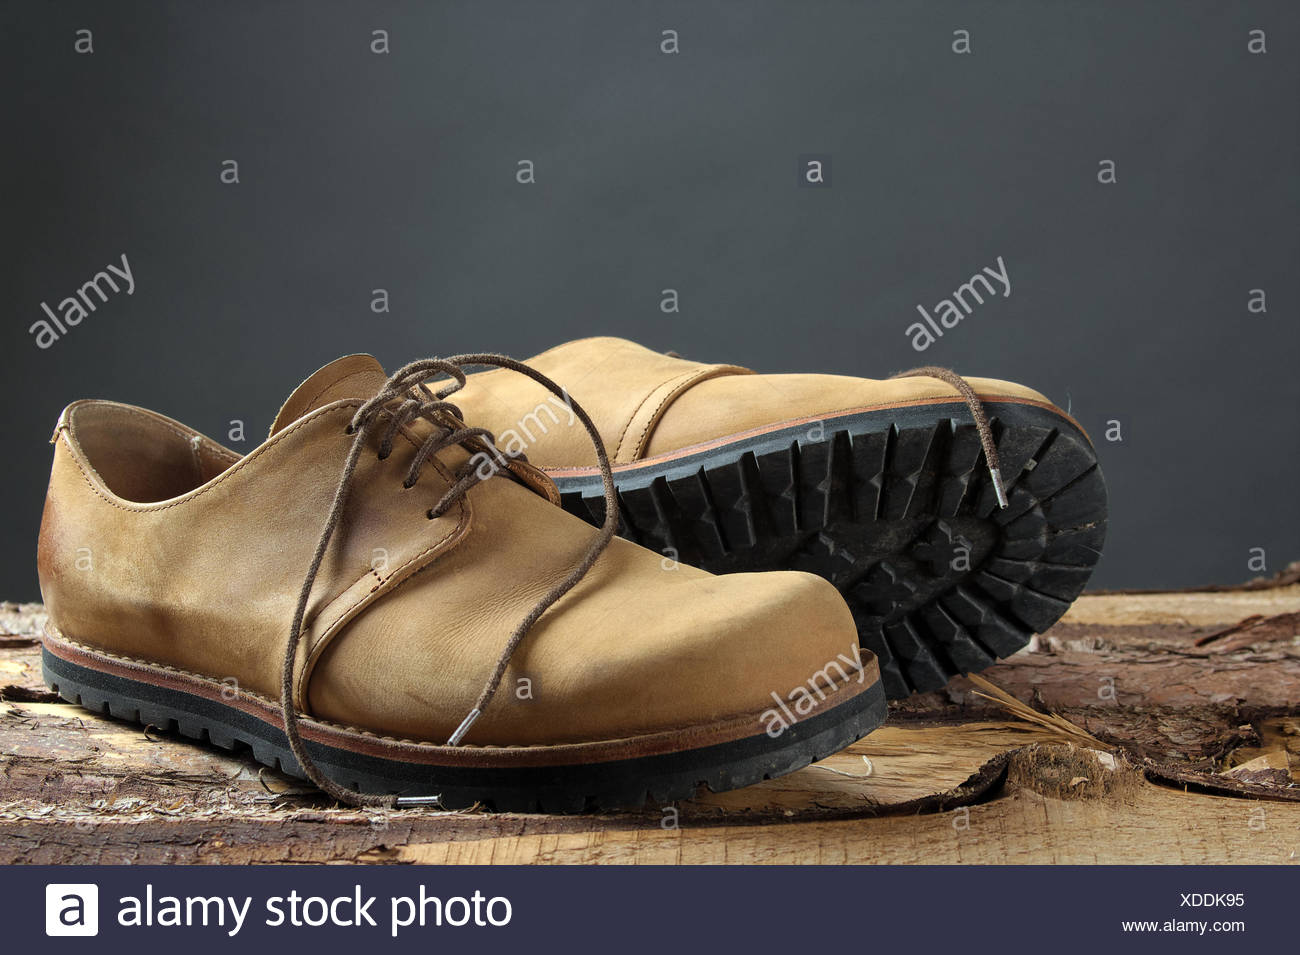 Hiking Boots - Stock Image